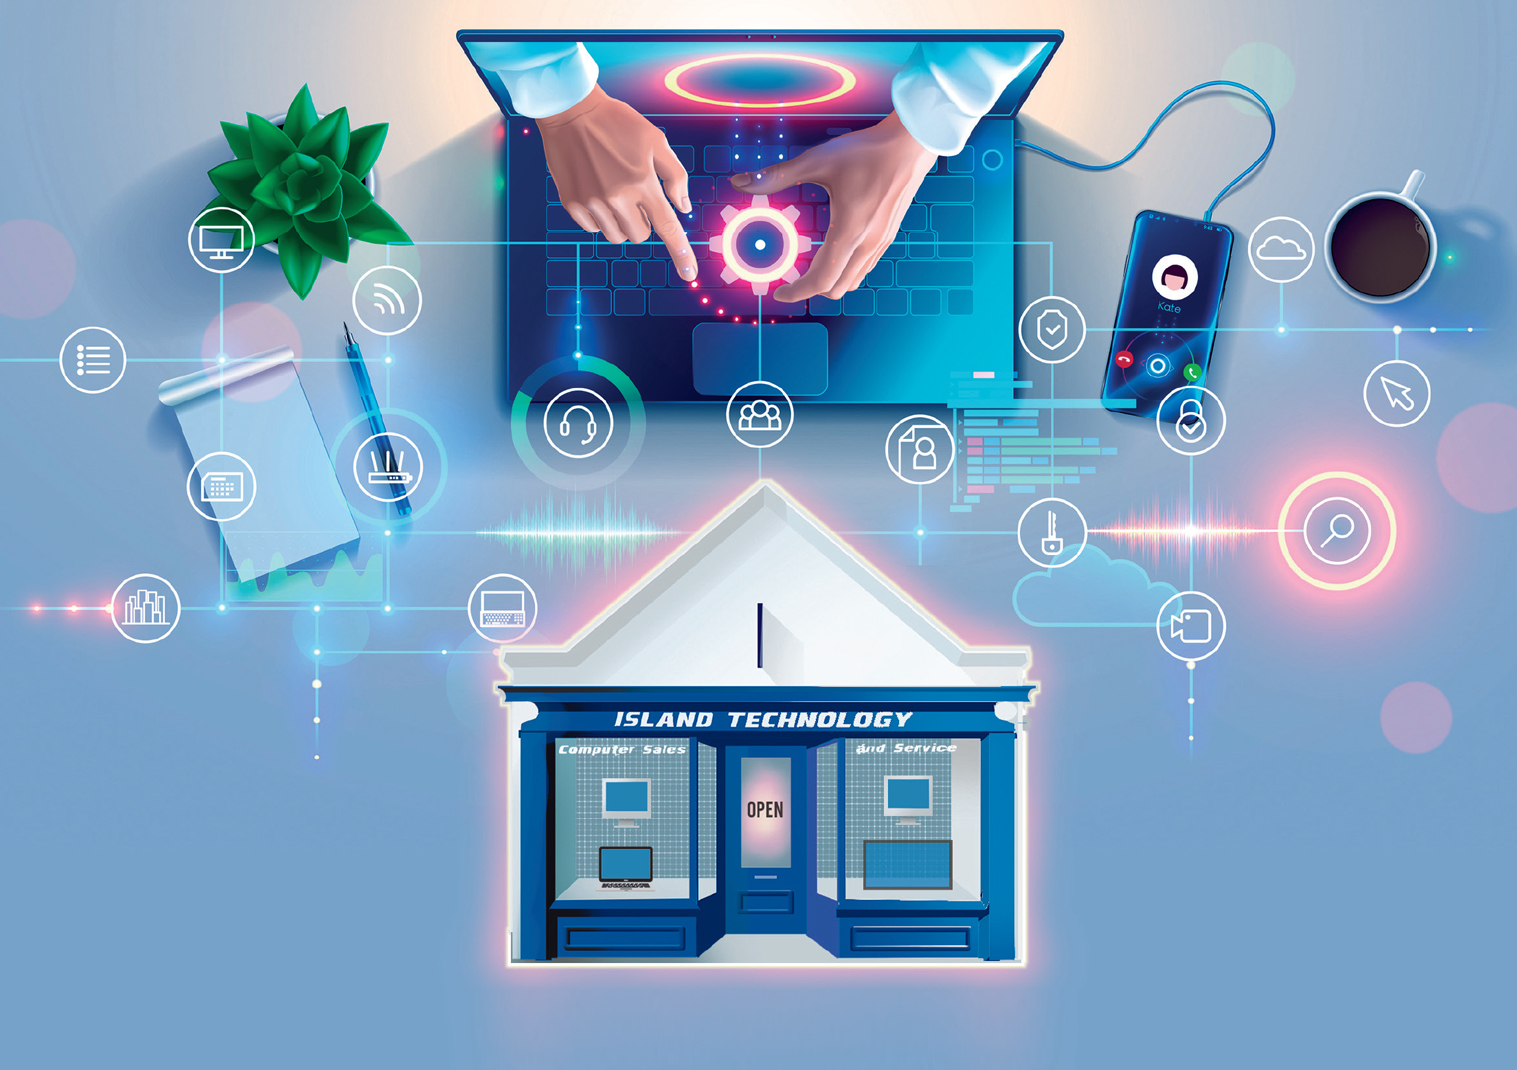 Your One Stop Tech Shop - Island Technology